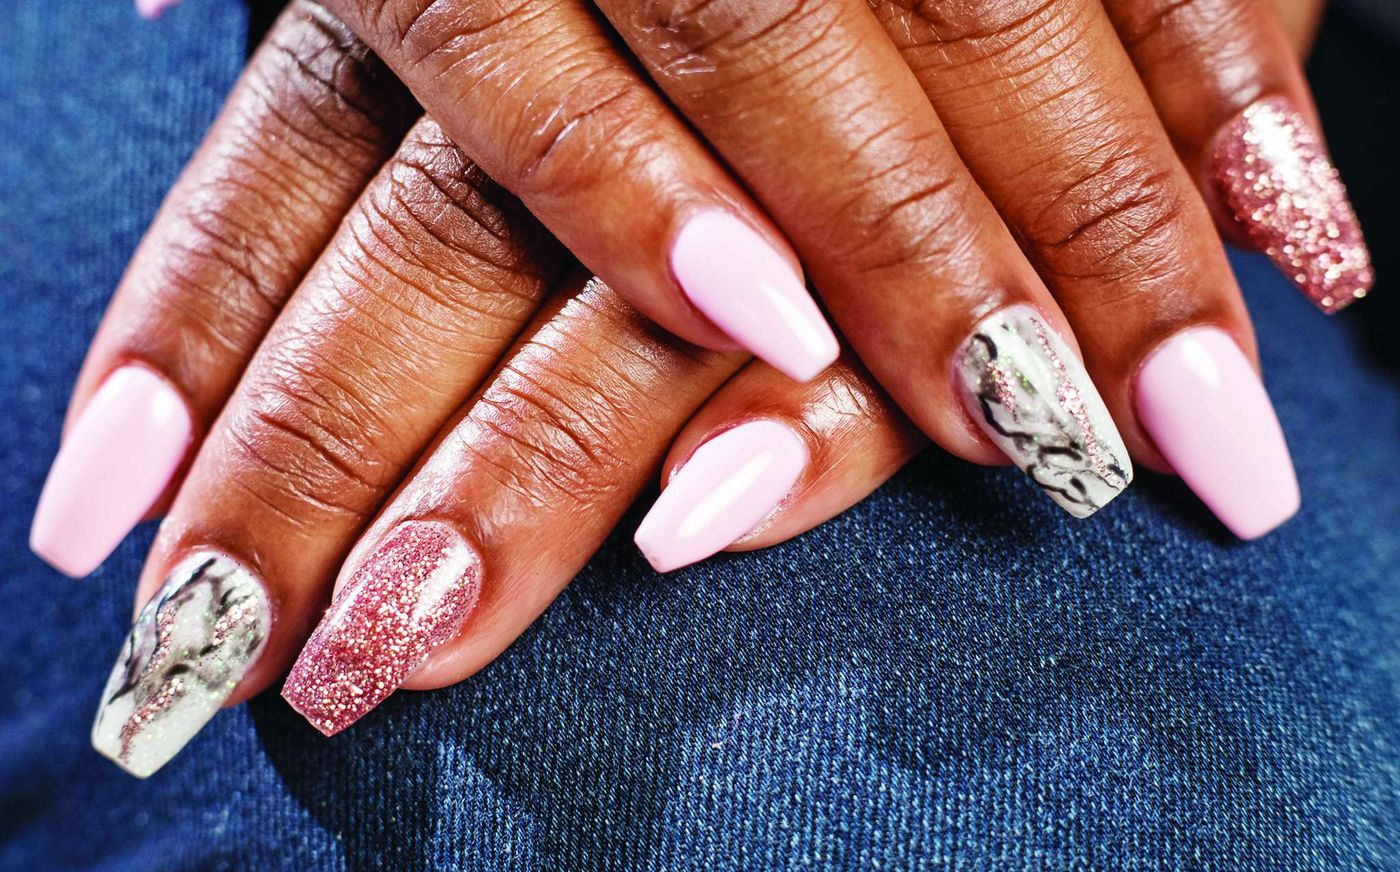 This hot nail trend is inspired by nature